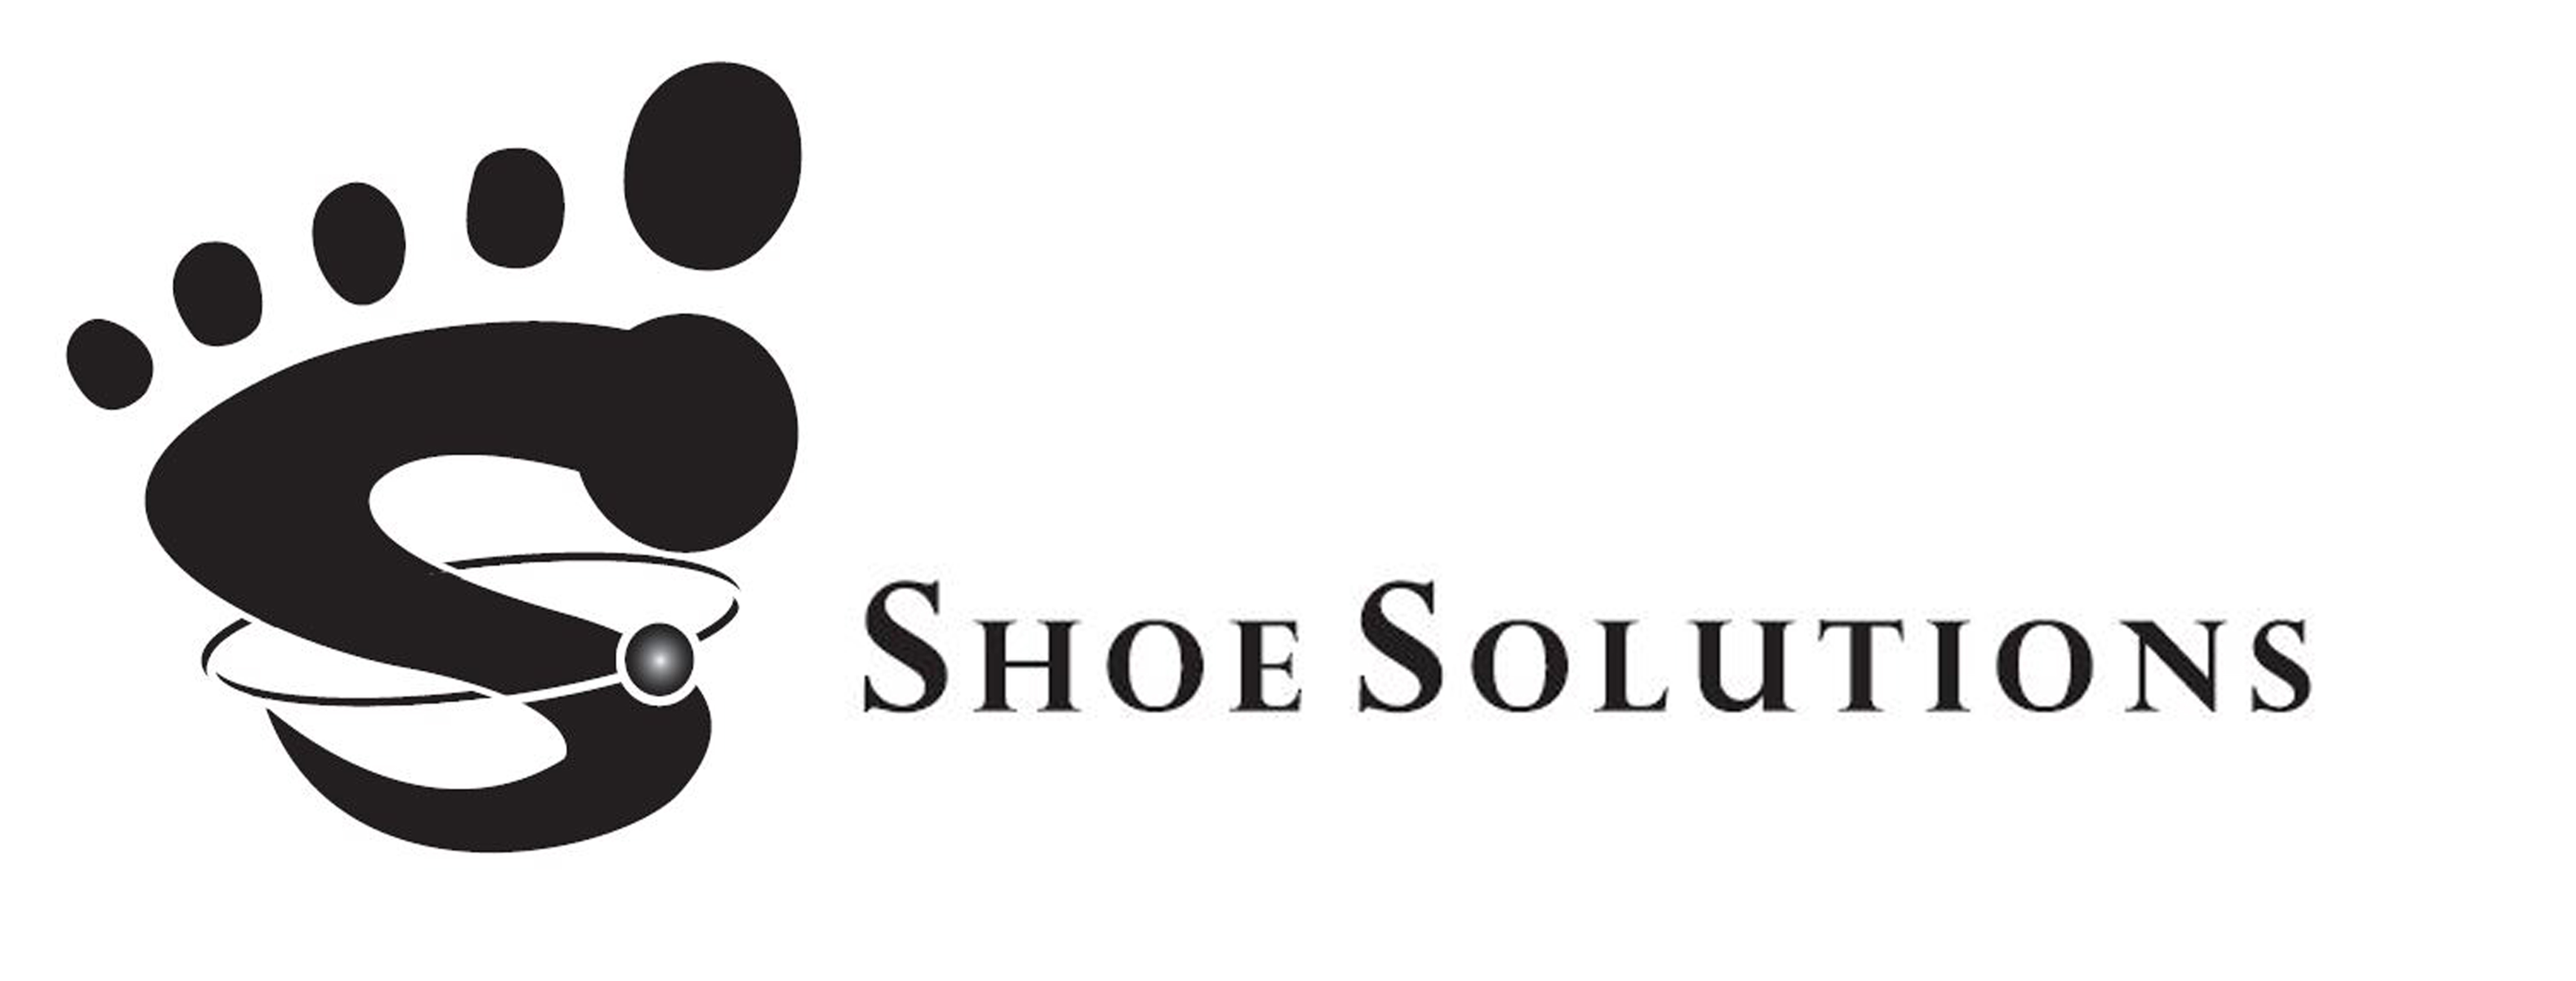 Shoe Solutions